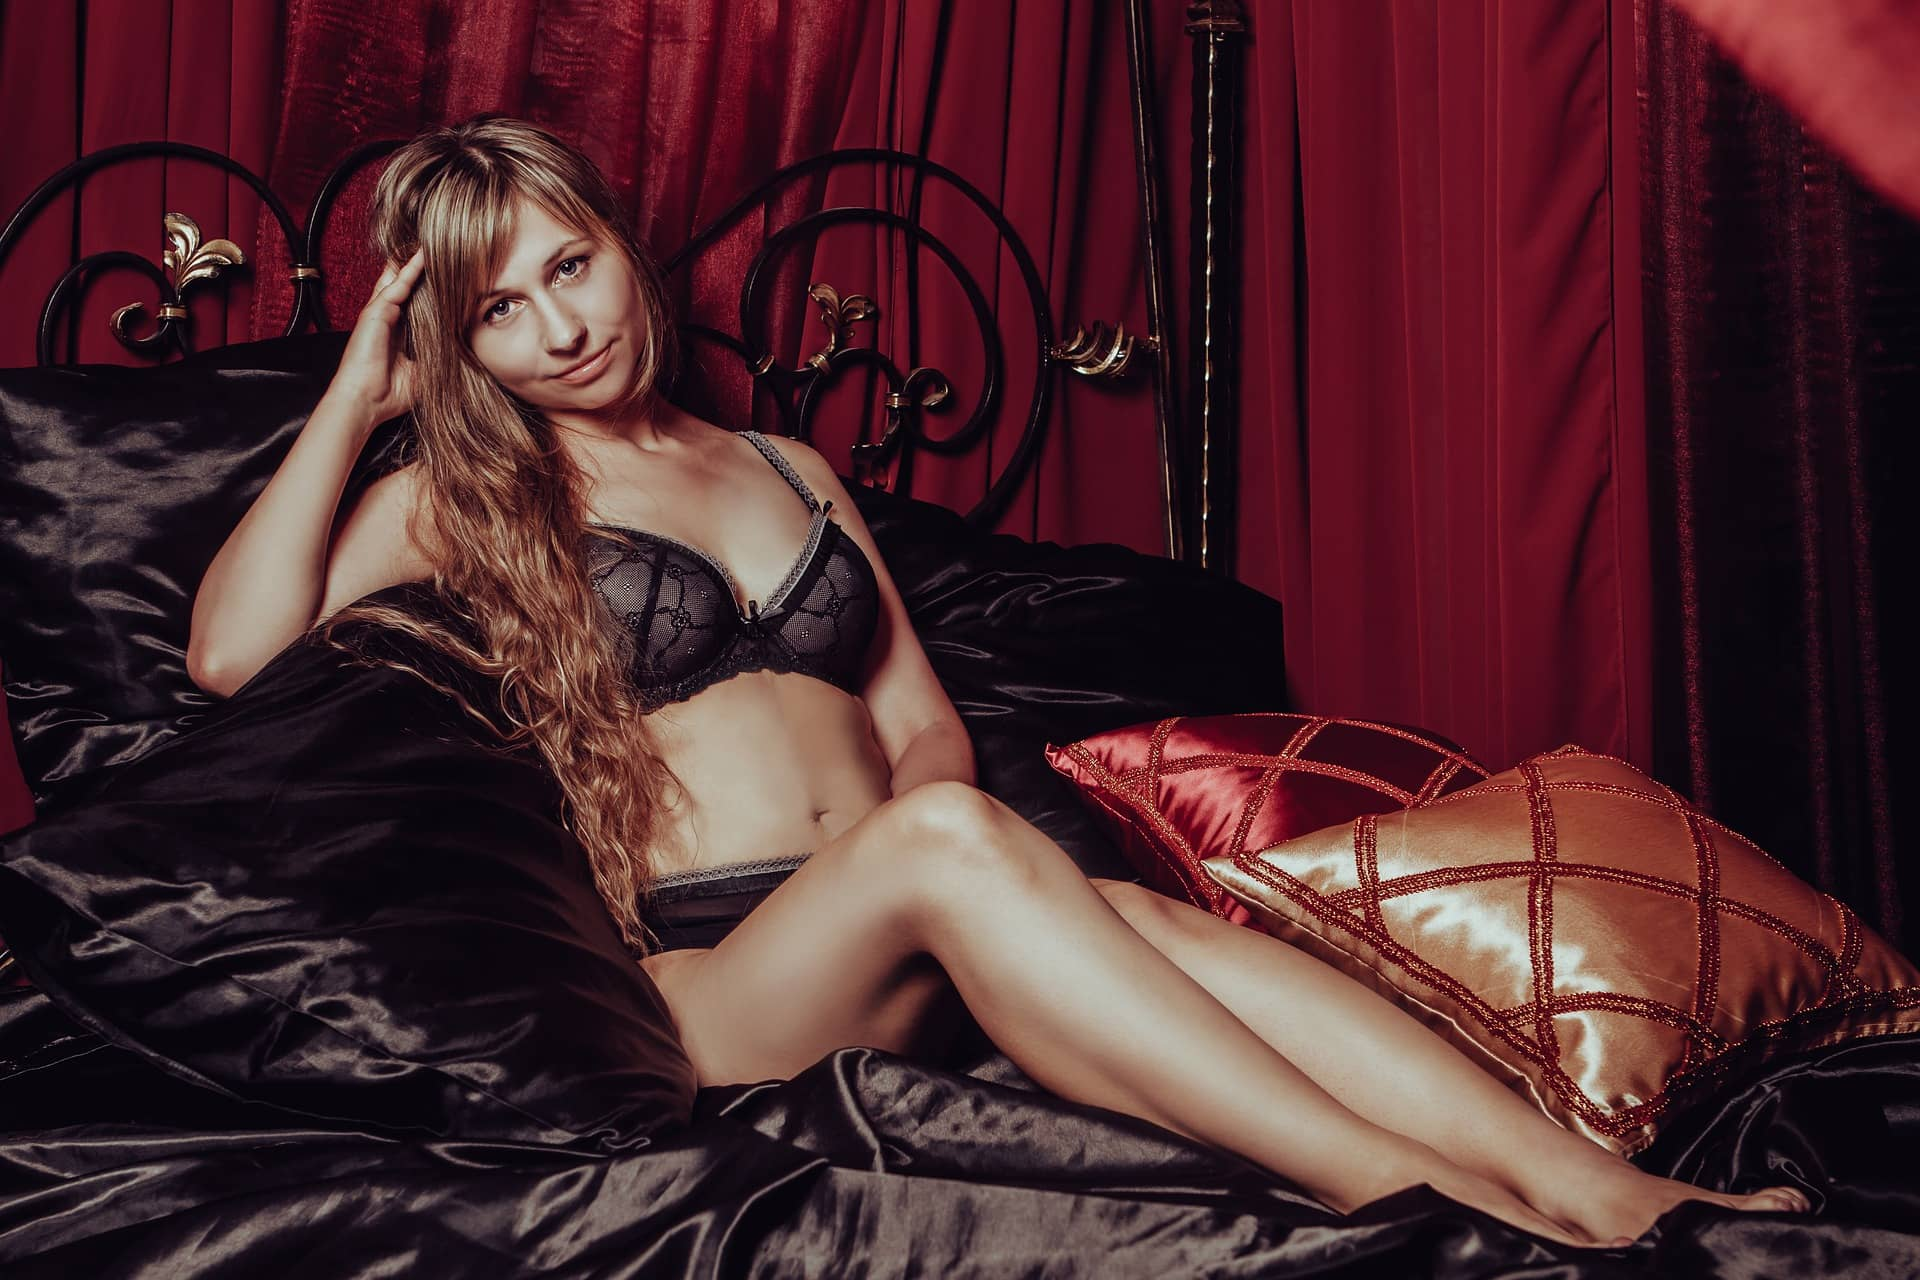 Beautiful russian woman Victoria Borodinova sitting in satin black sheets wearing black lace lingerie showing hew belly, thighs and sexy legs